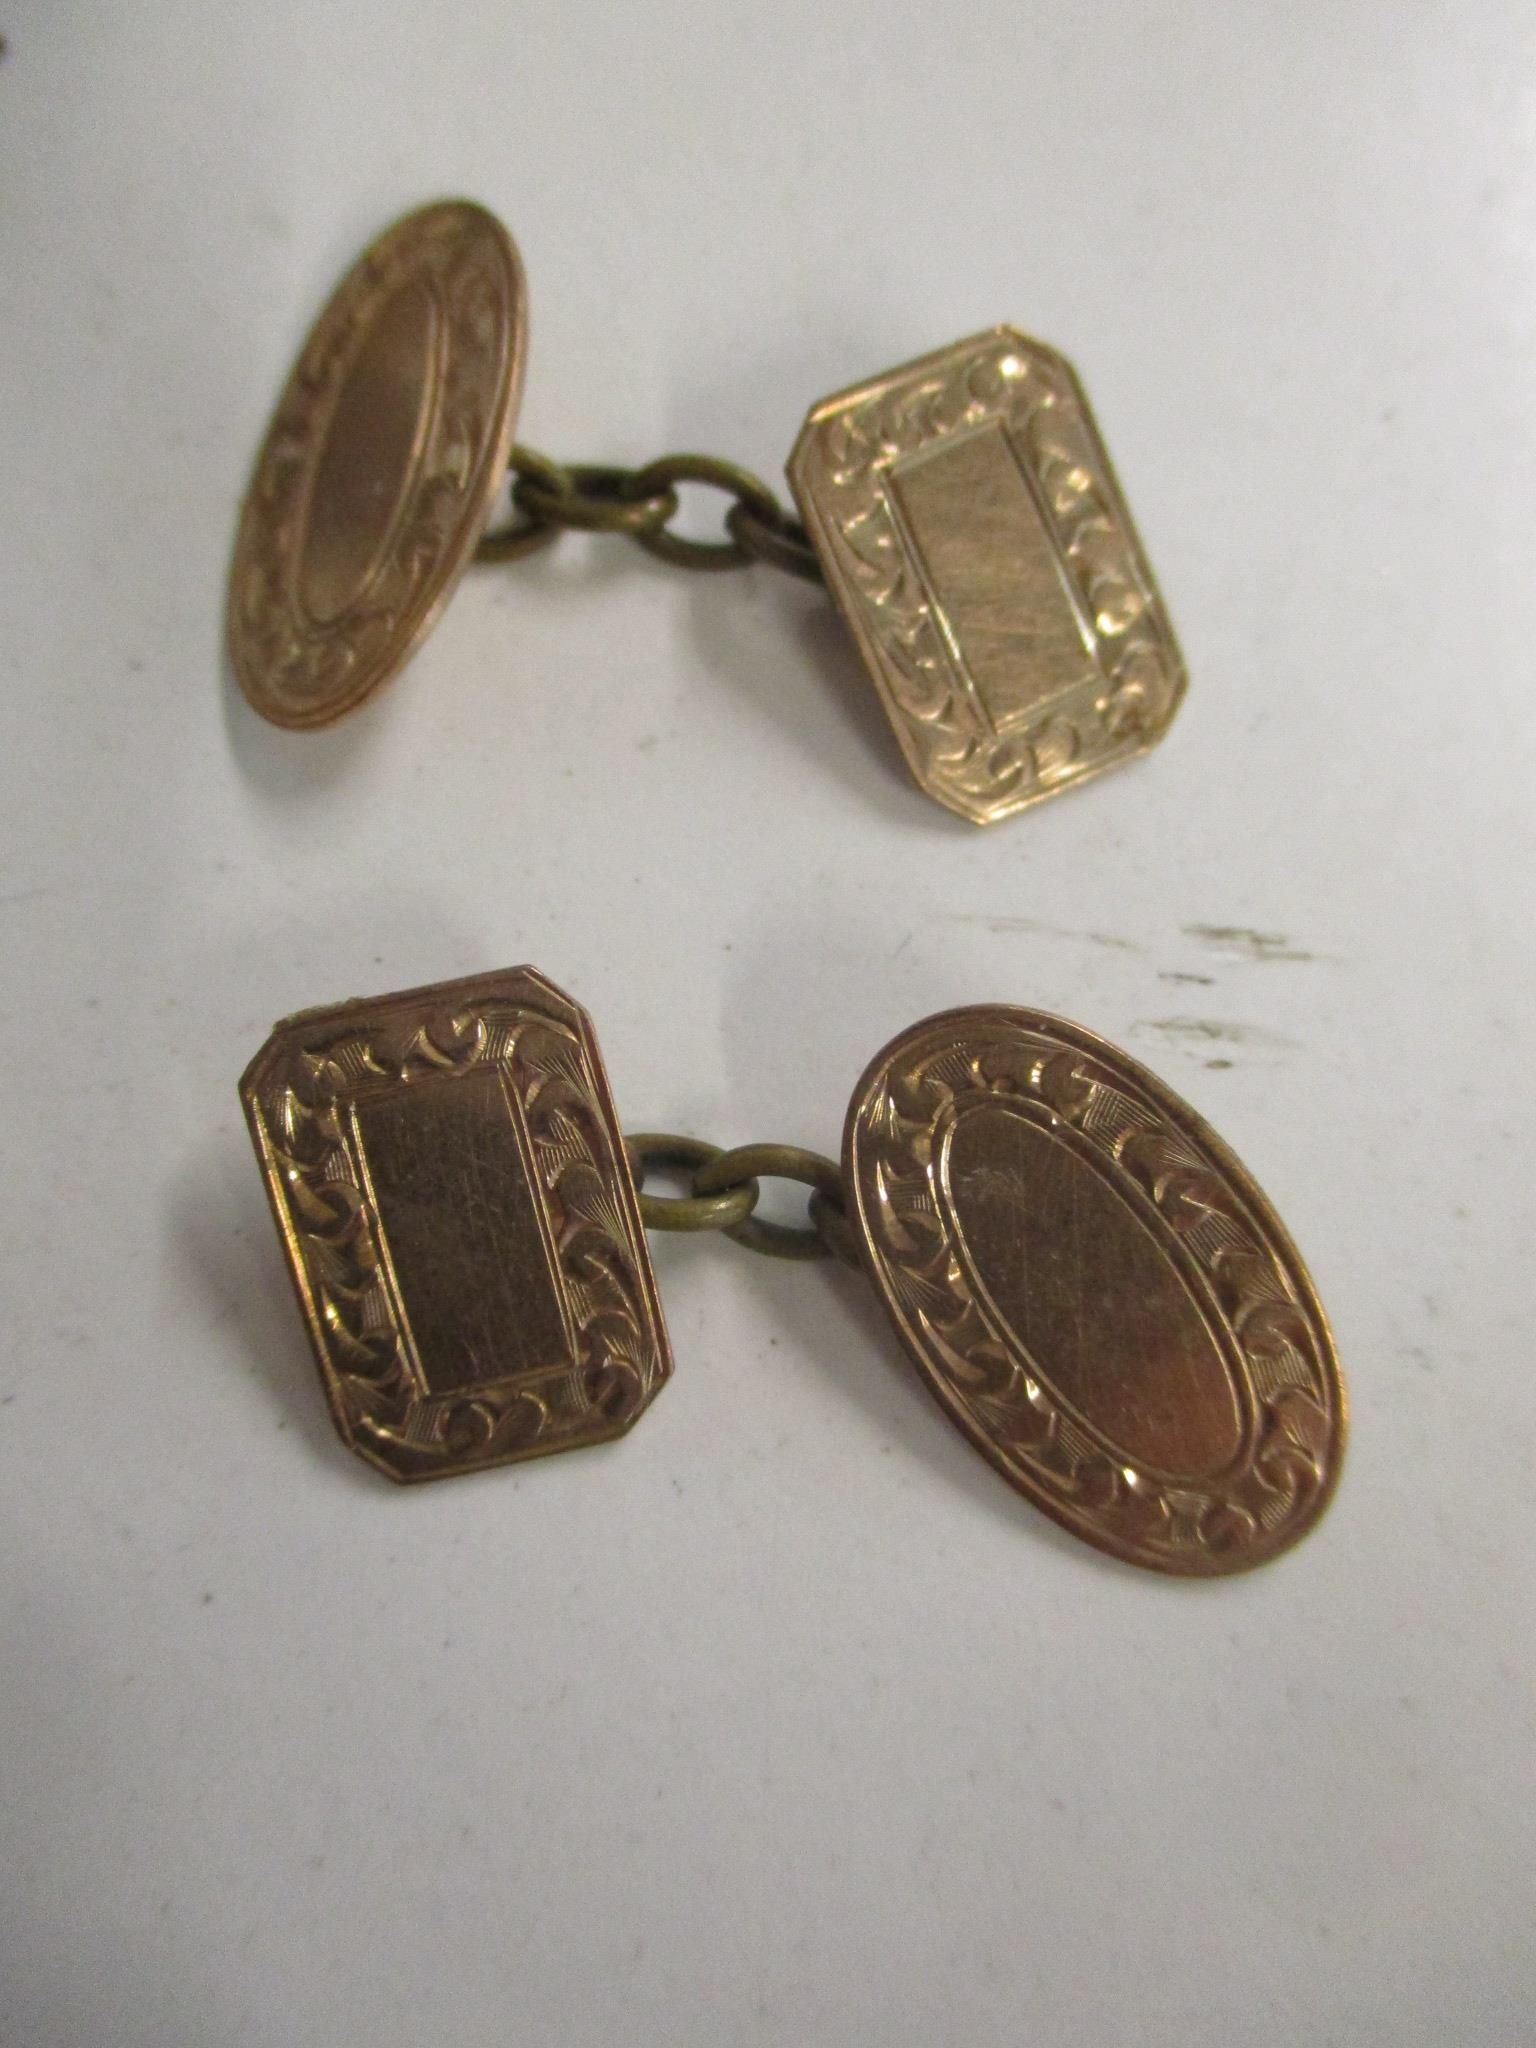 A pair of 9ct gold Chester hallmarked cuff links, 5.4g, along with other cuff links - Image 2 of 3